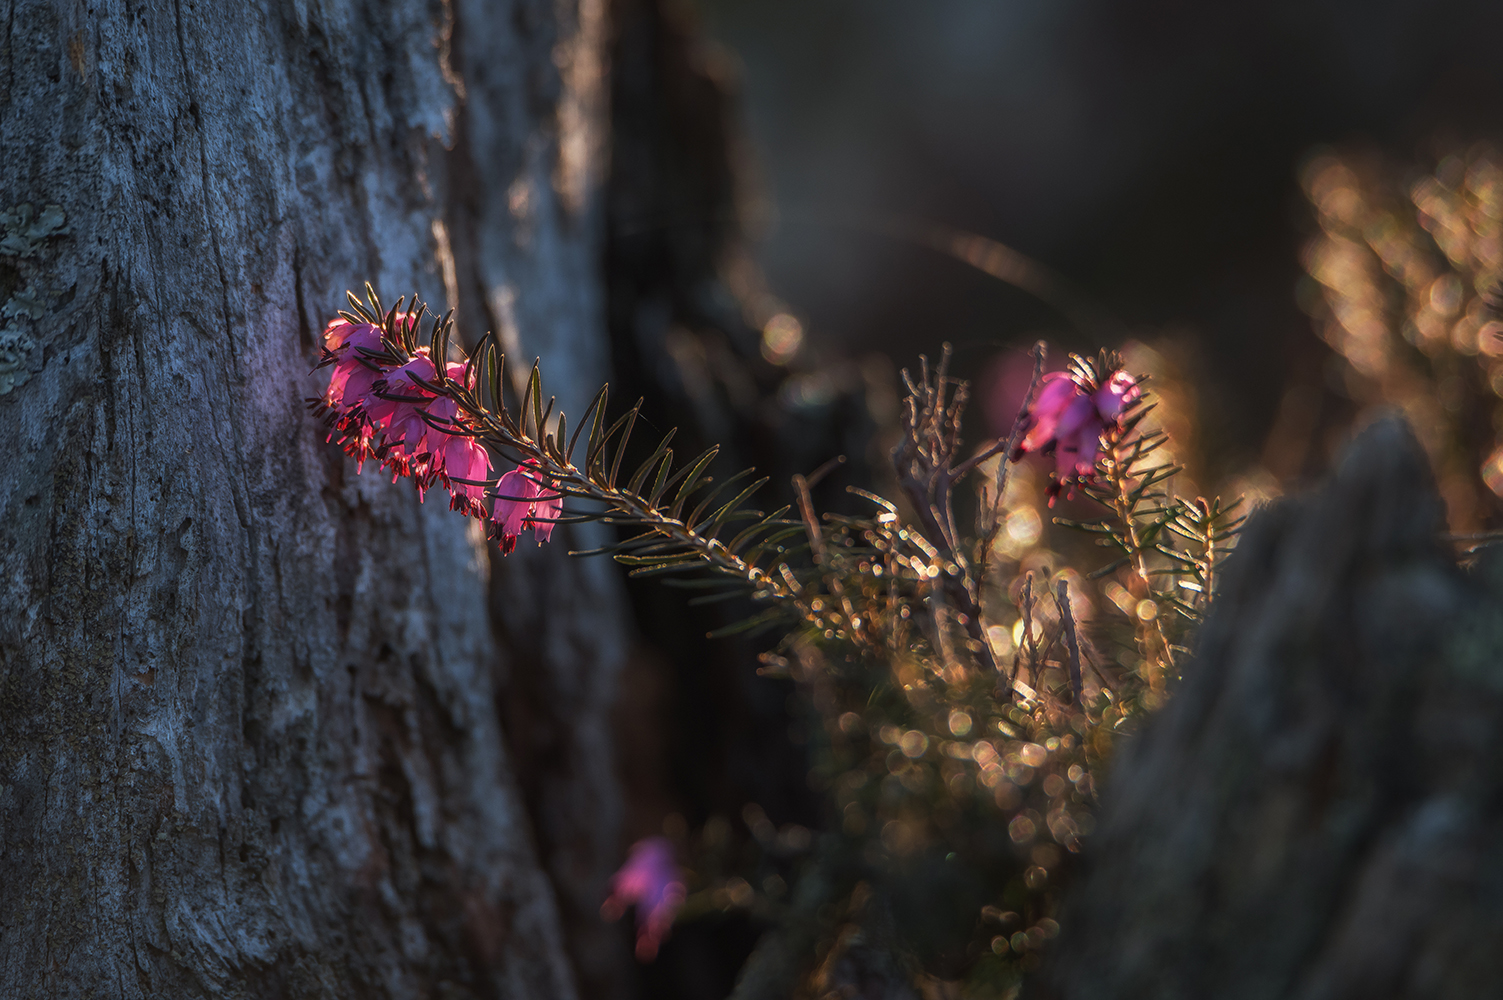 Erica plant with sunbeams example image 1